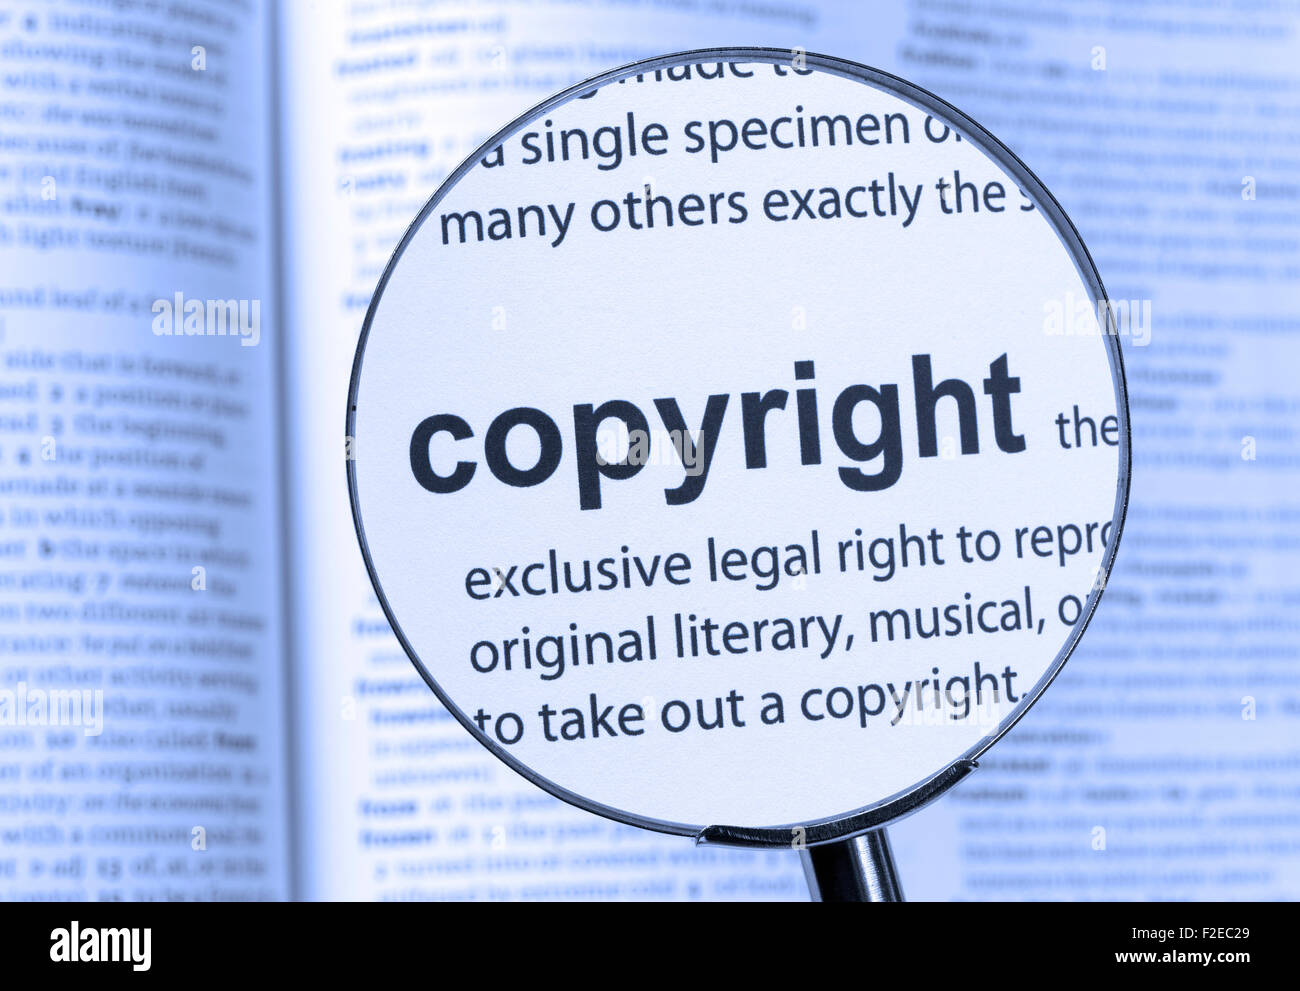 copyright dictionary definition single word stock photos & copyright